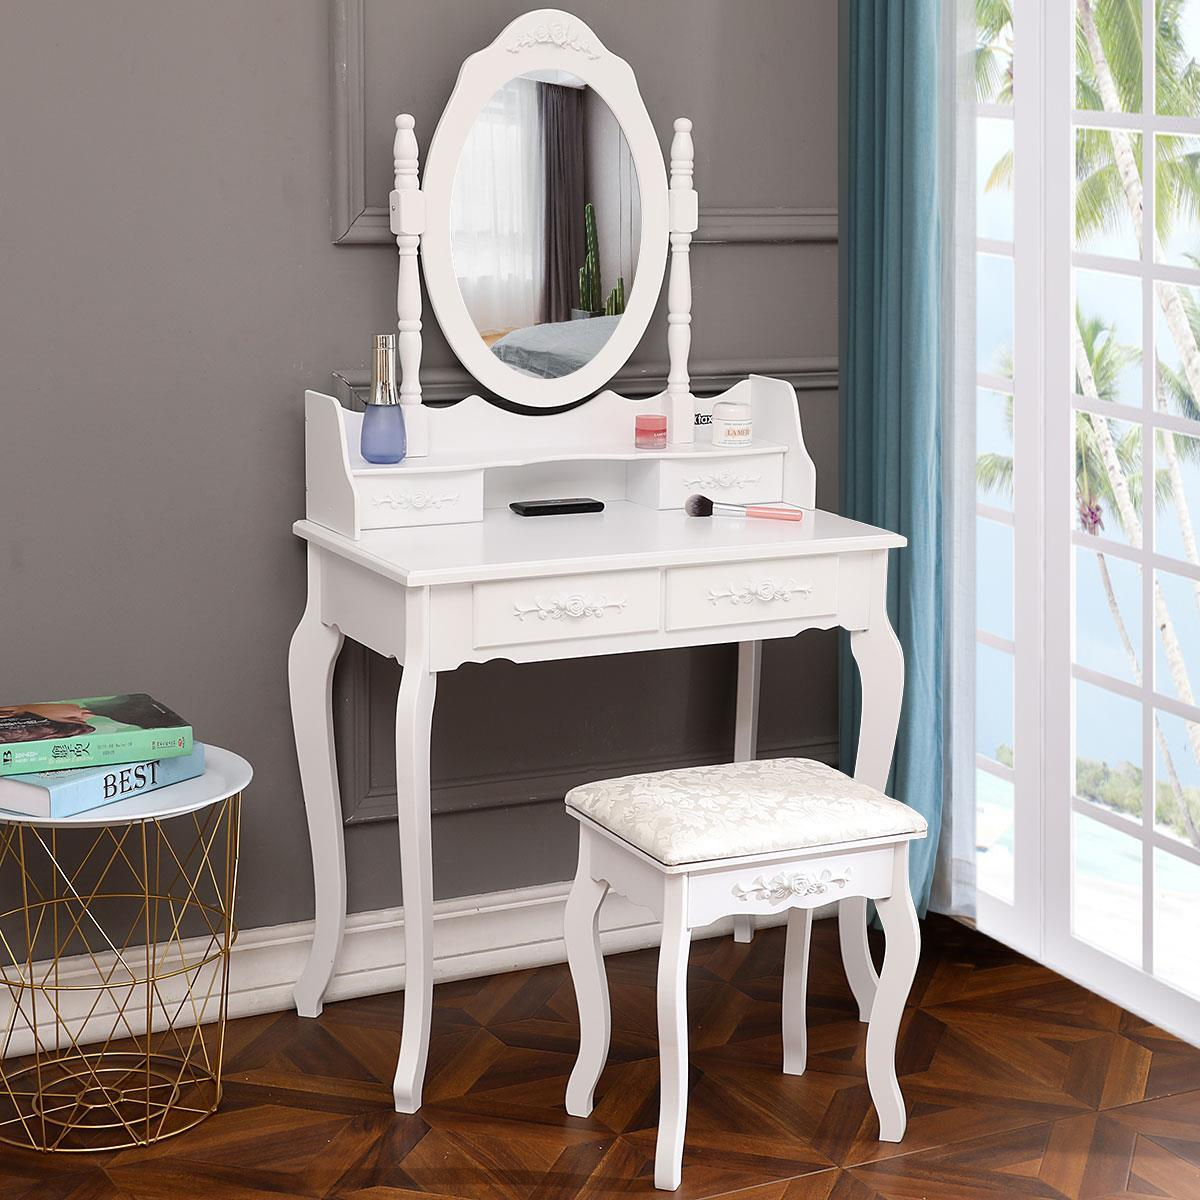 Vanity Desk With Mirror Bedroom Makeup Table For Girls Storage Modern Furniture Ebay